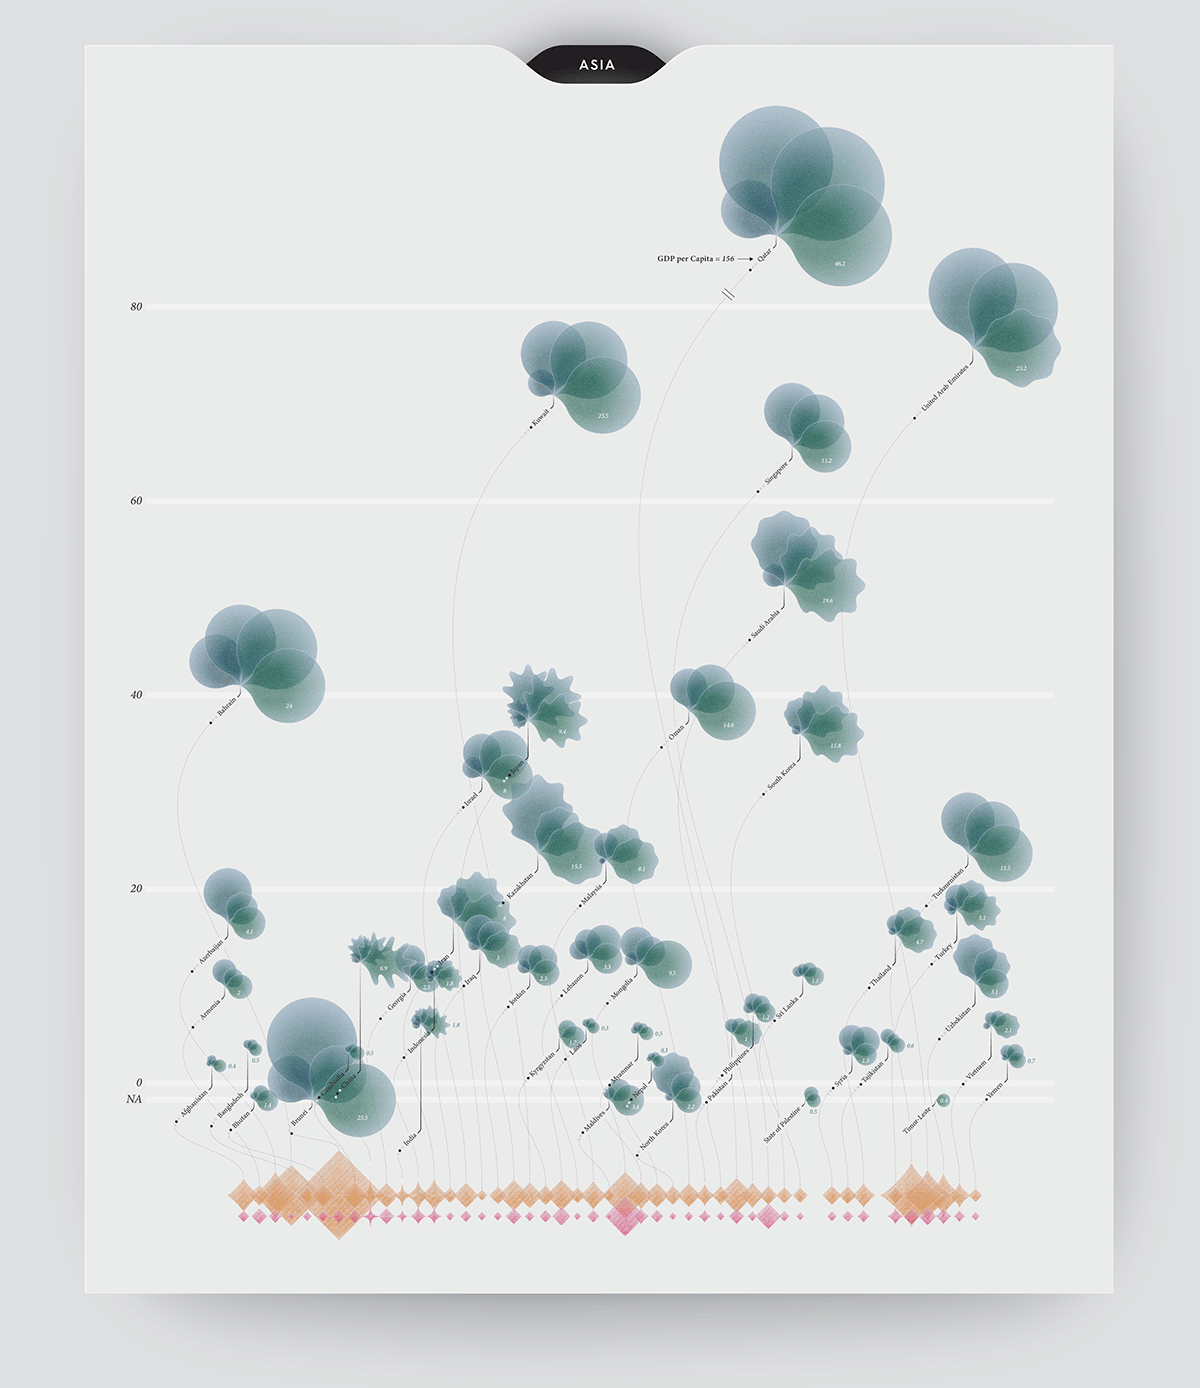 Infographic data visualization (or dataviz) on greenhouse gas emissions in Asia